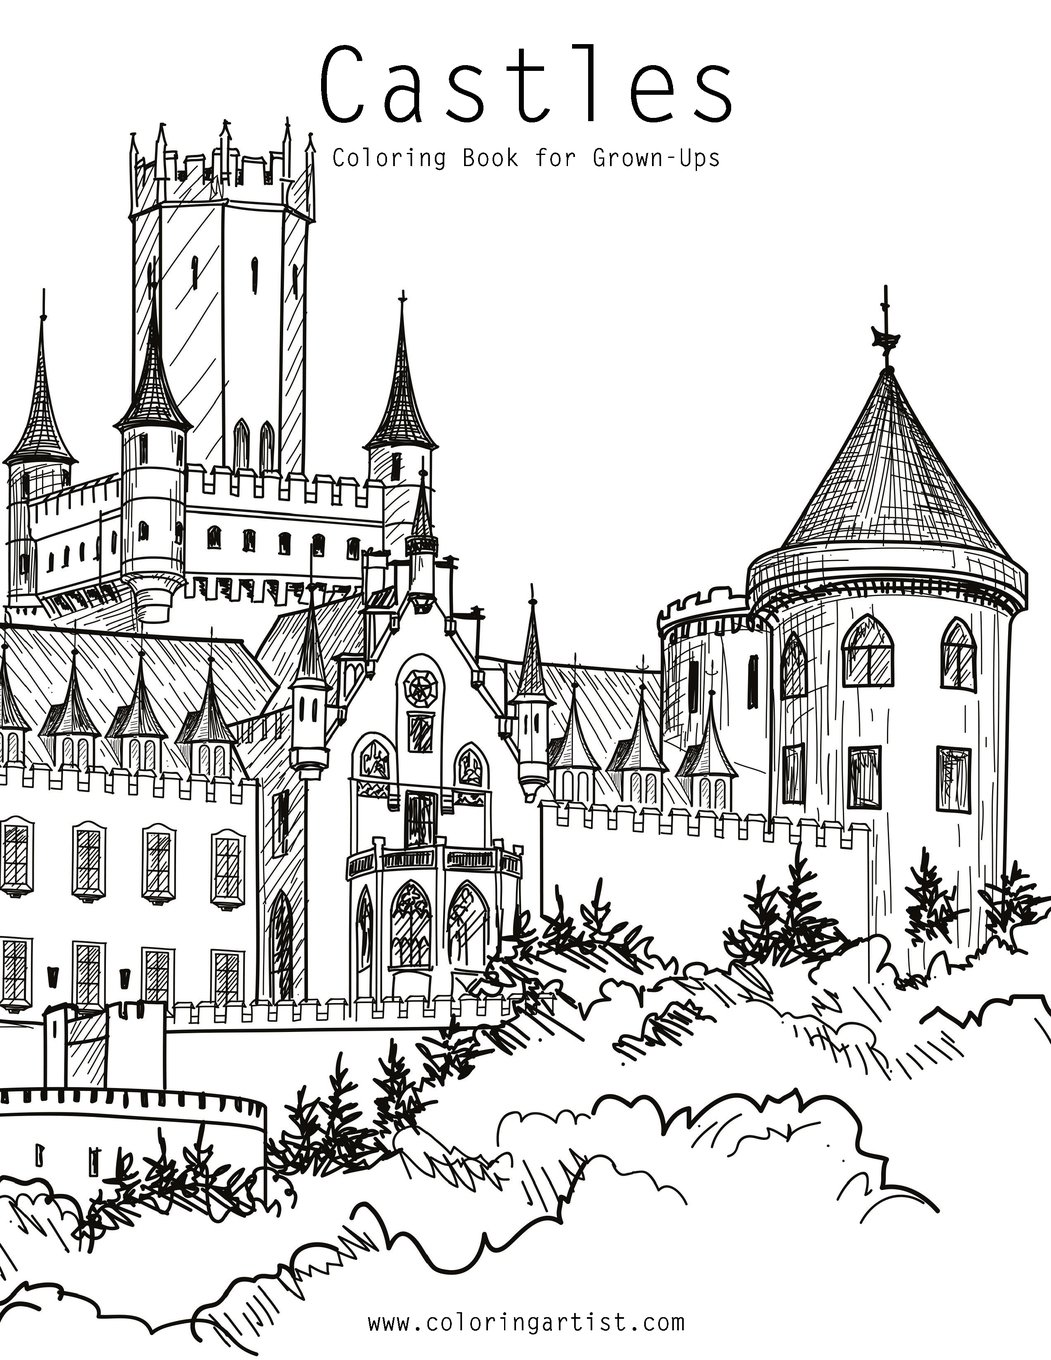 Amazon Com Castles Coloring Book For Grown Ups 1 Volume 1 9781543099300 Snels Nick Books